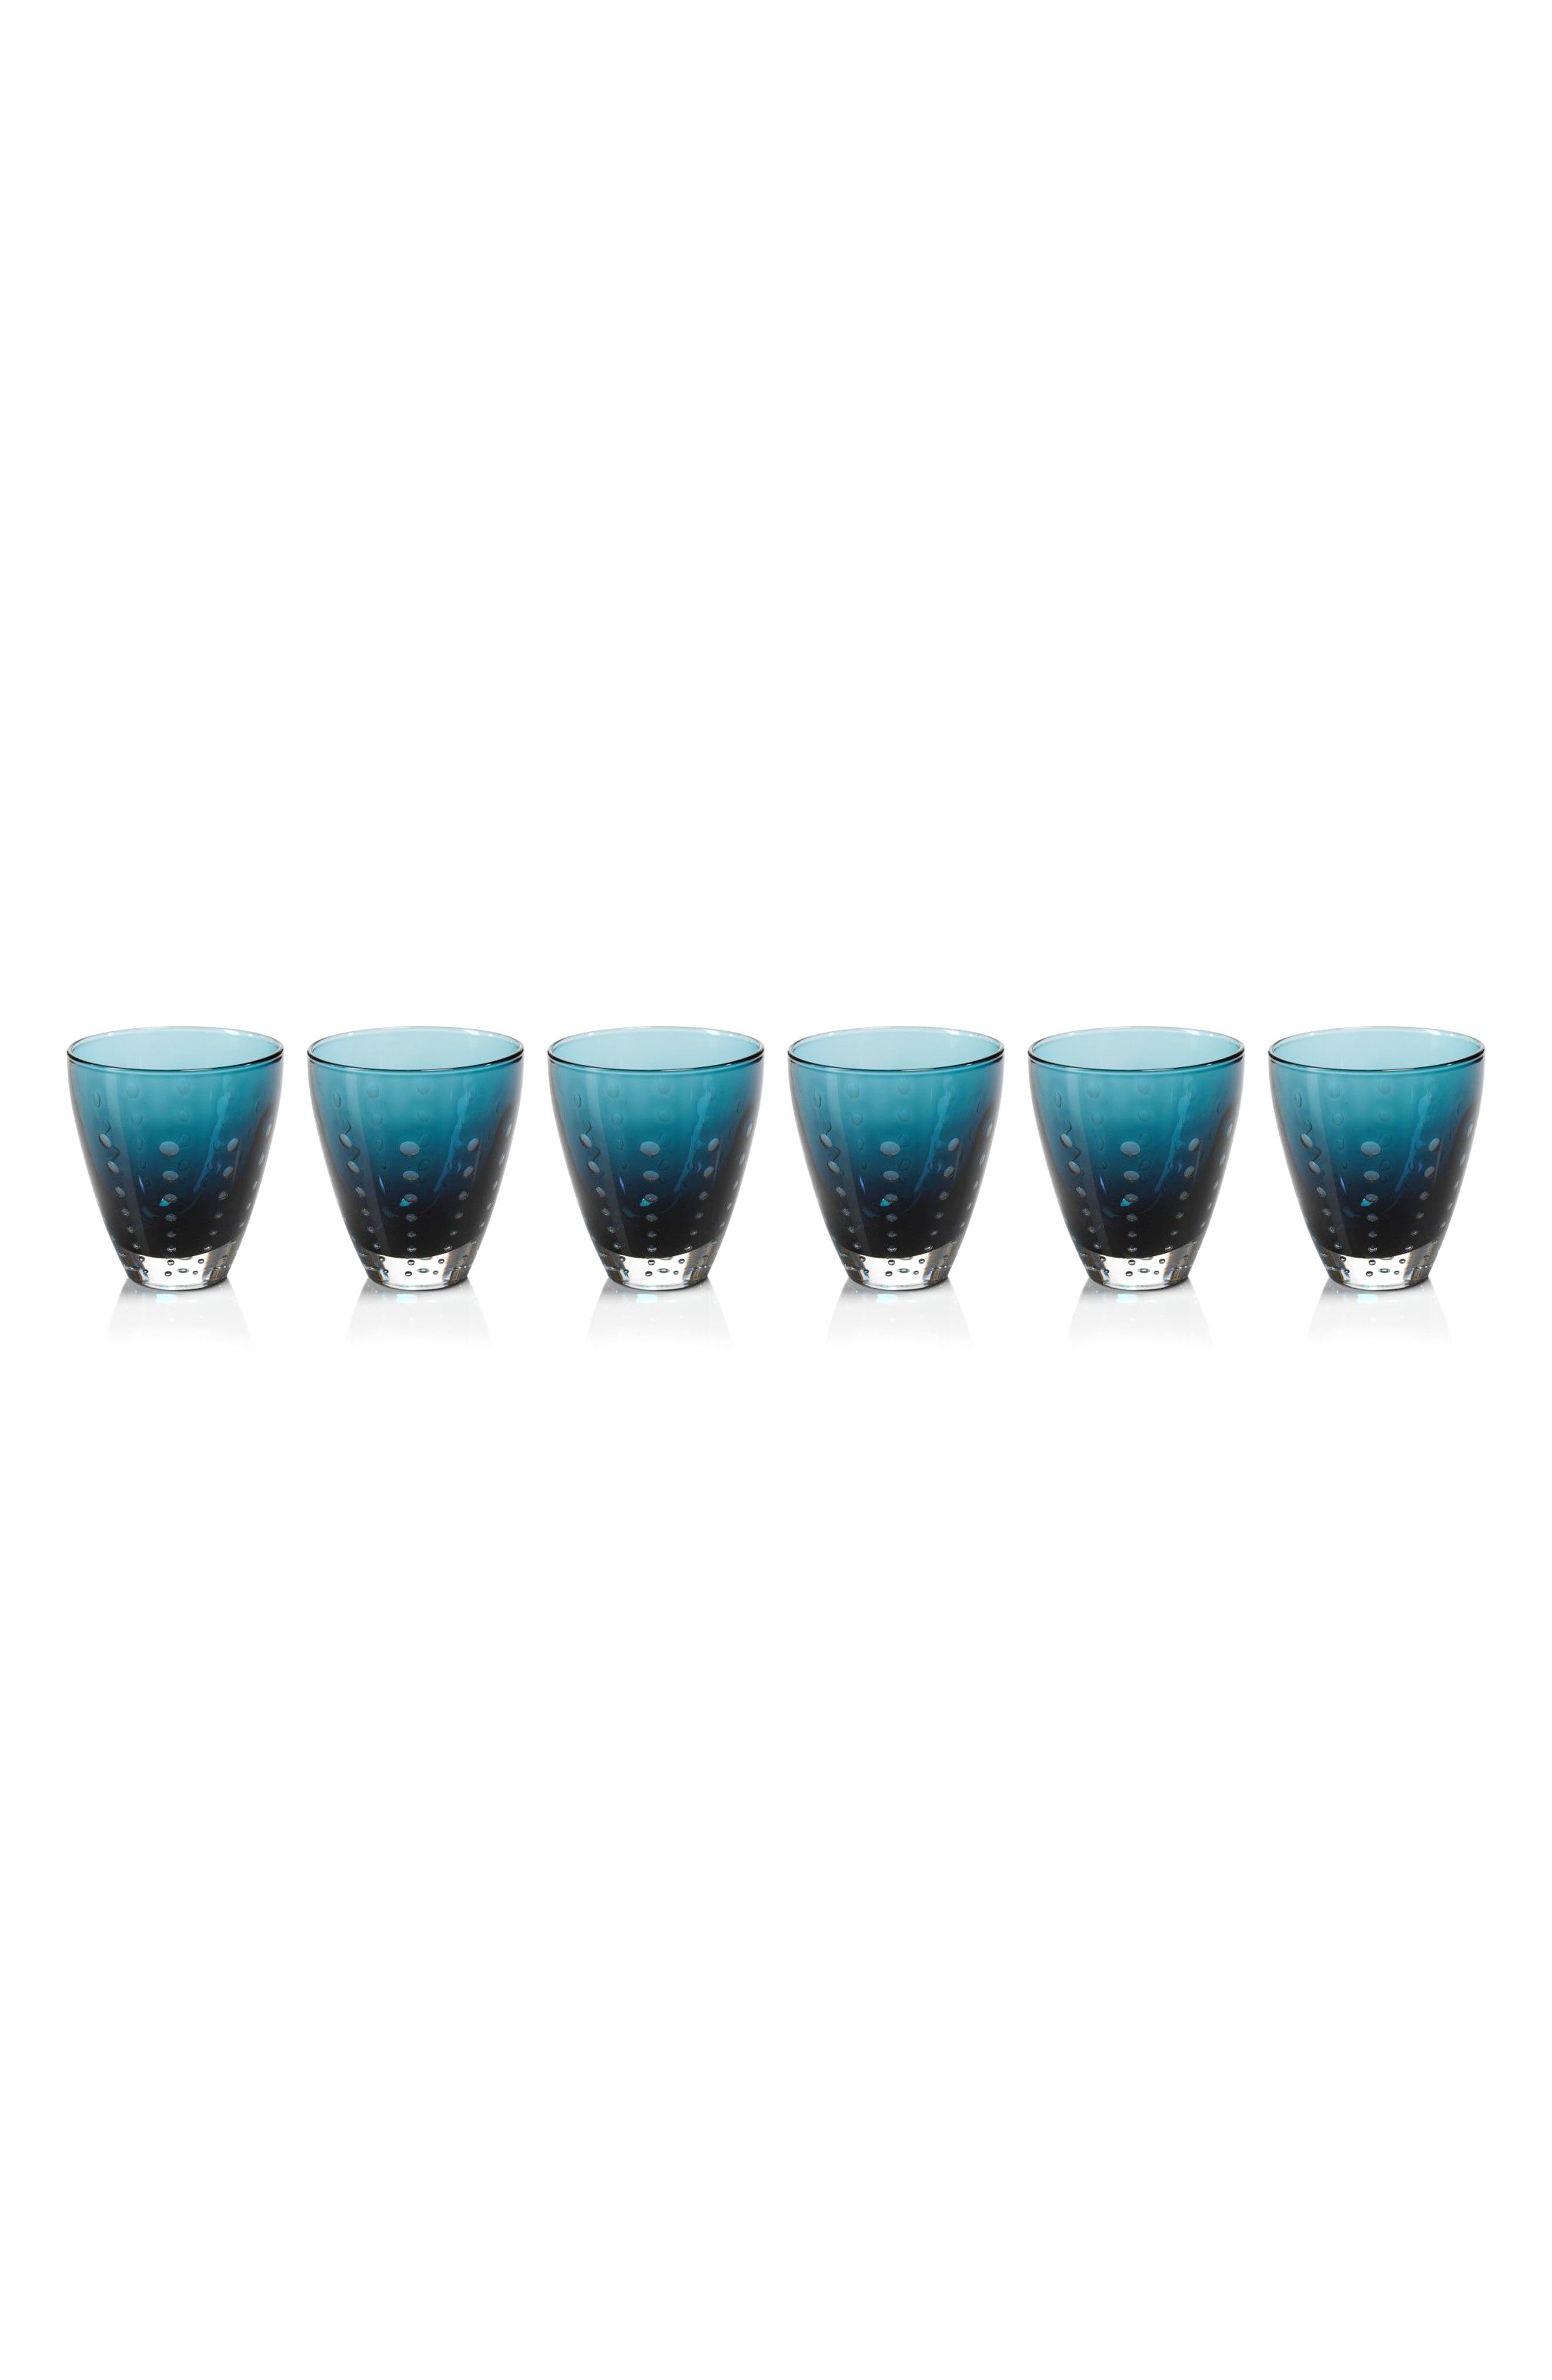 Bubbled Set of 6 Double Old Fashioned Glasses,                             Main thumbnail 1, color,                             400